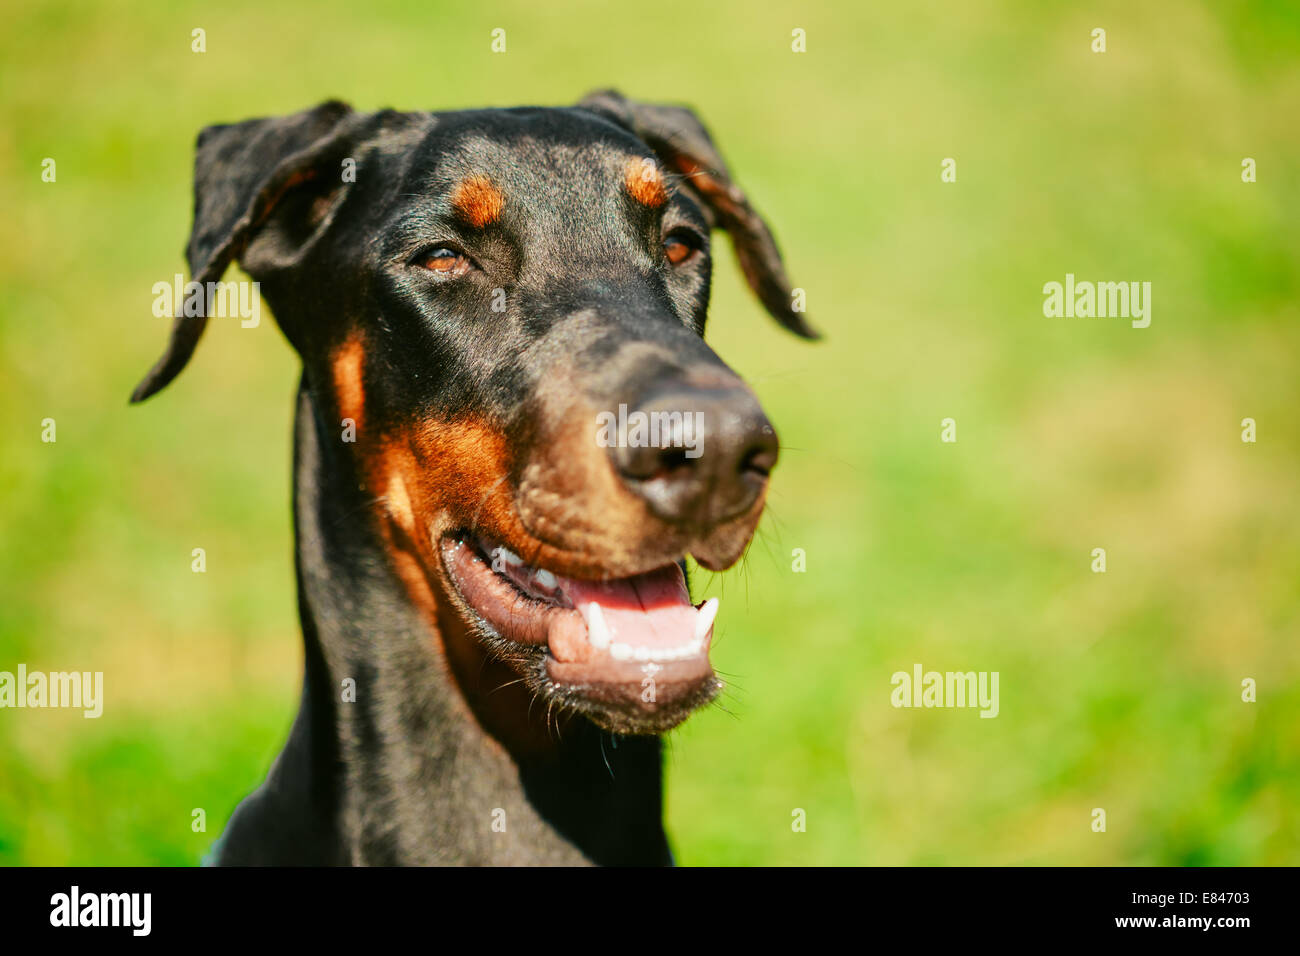 Young, Beautiful, Black And Tan Doberman Standing On The Lawn. Dobermann Is A Breed Known For Being Intelligent, - Stock Image